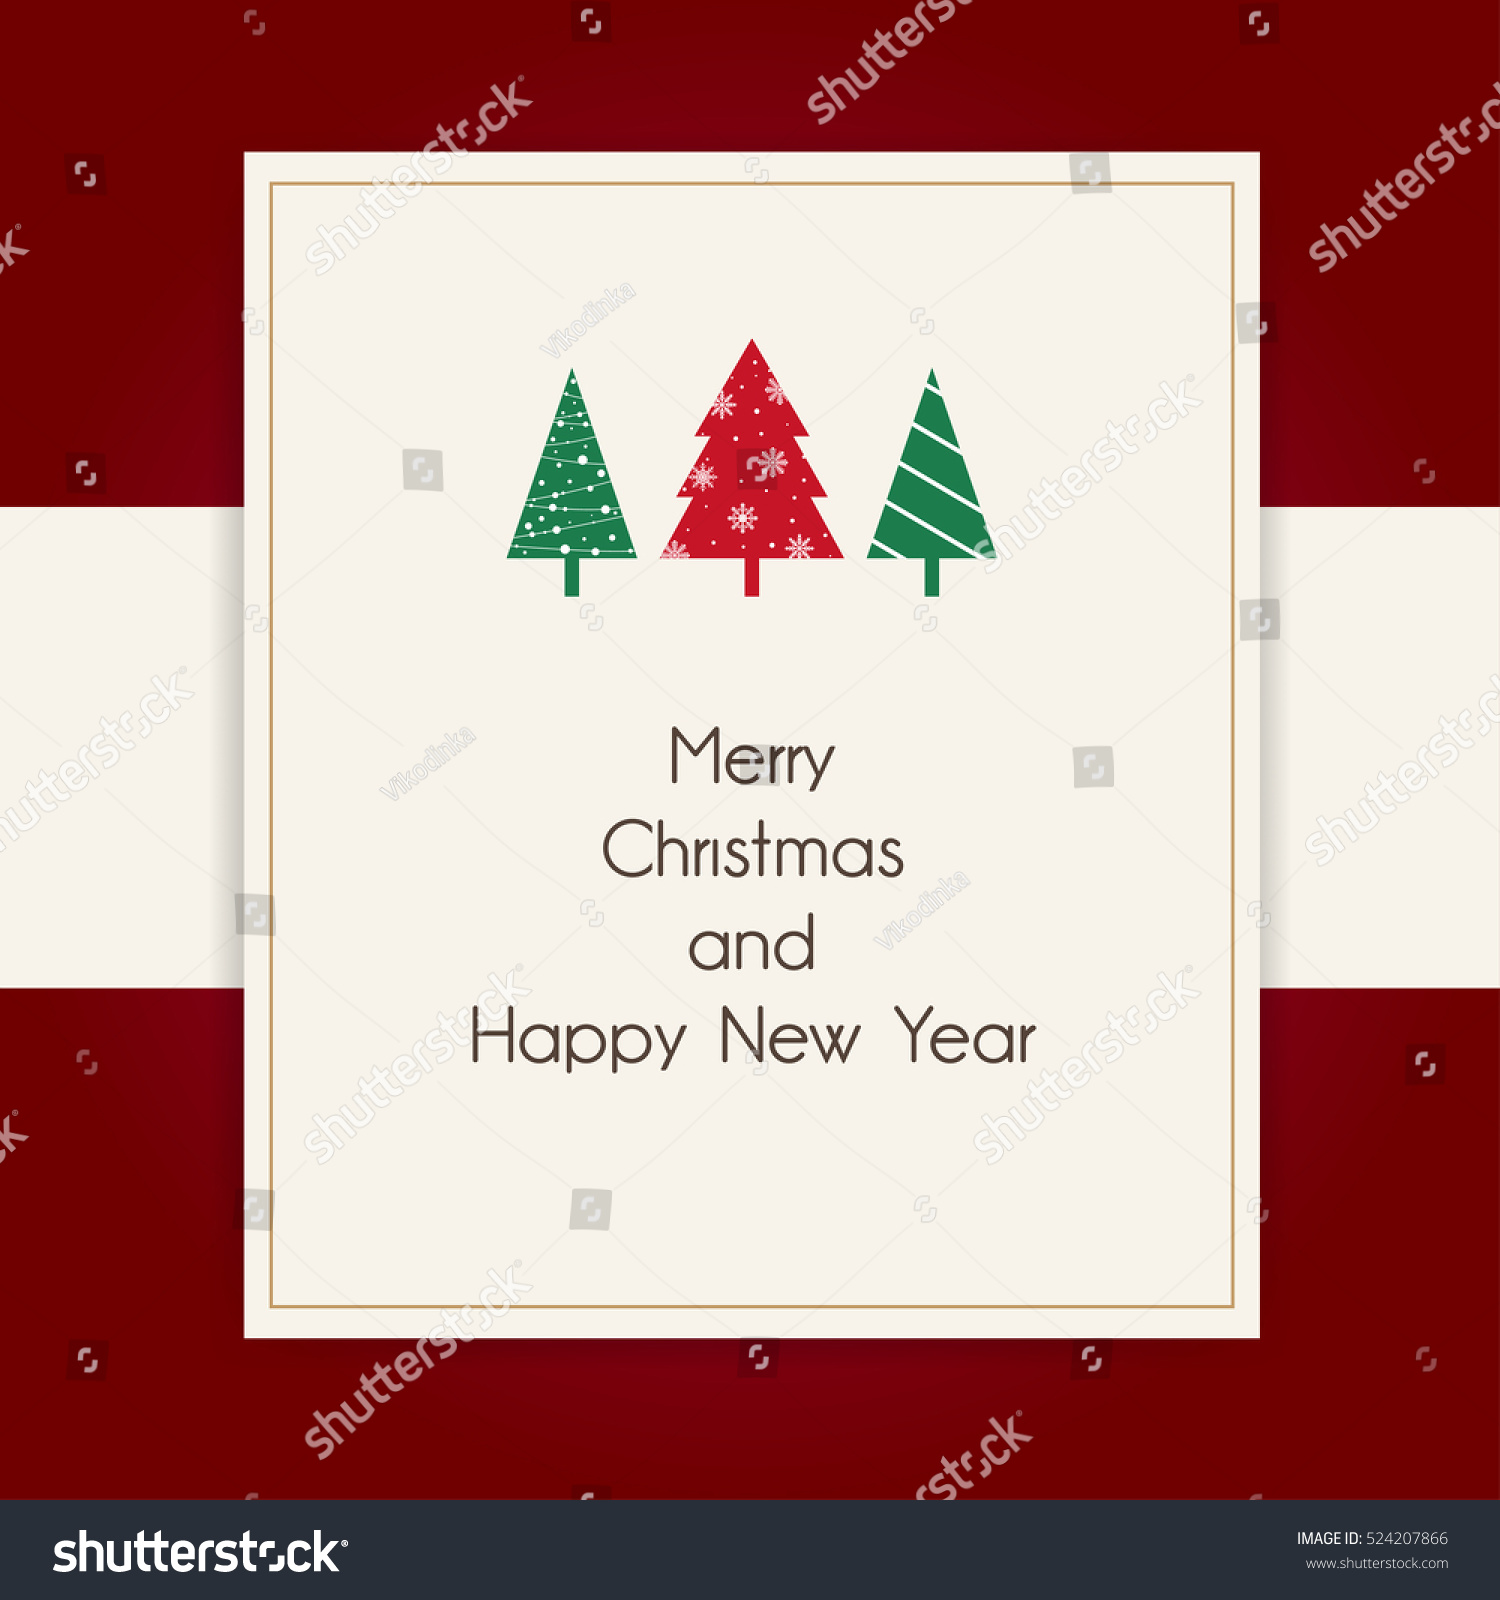 Greetings merry christmas happy new year stock vector royalty free greetings merry christmas and happy new year card design xmas ribbon and trees vector illustration m4hsunfo